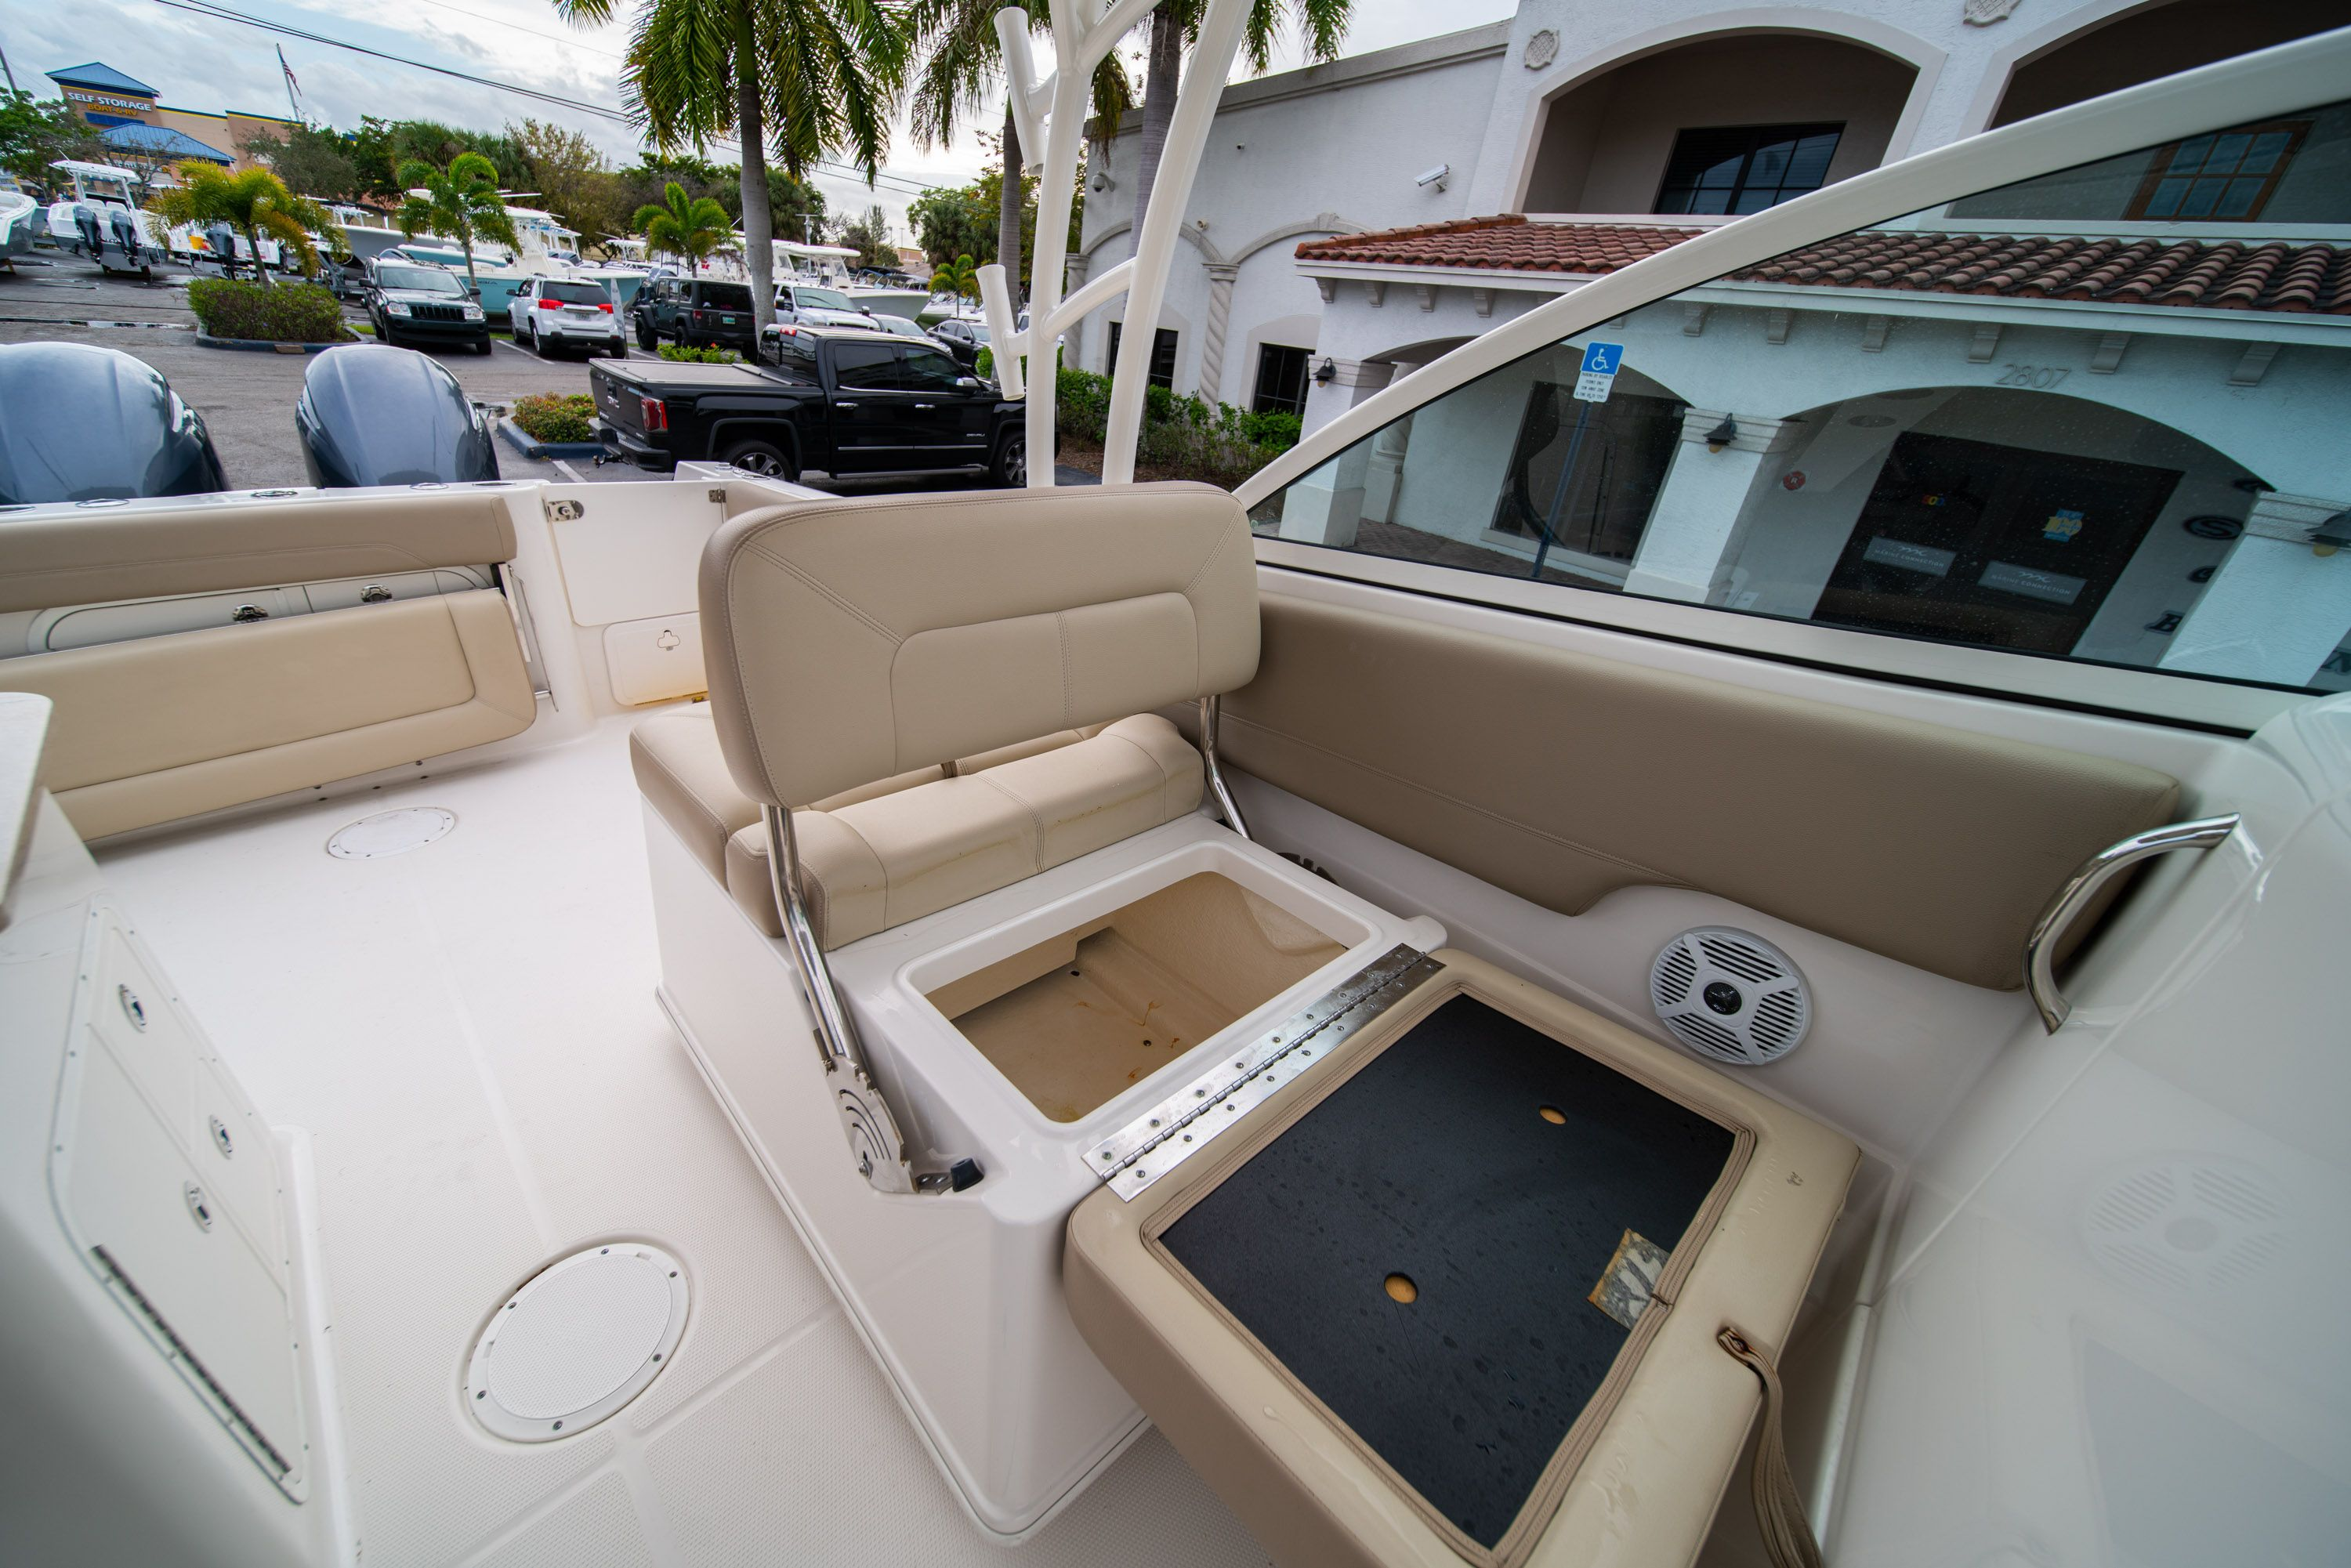 Thumbnail 52 for Used 2017 Sailfish 275 Dual Console boat for sale in West Palm Beach, FL